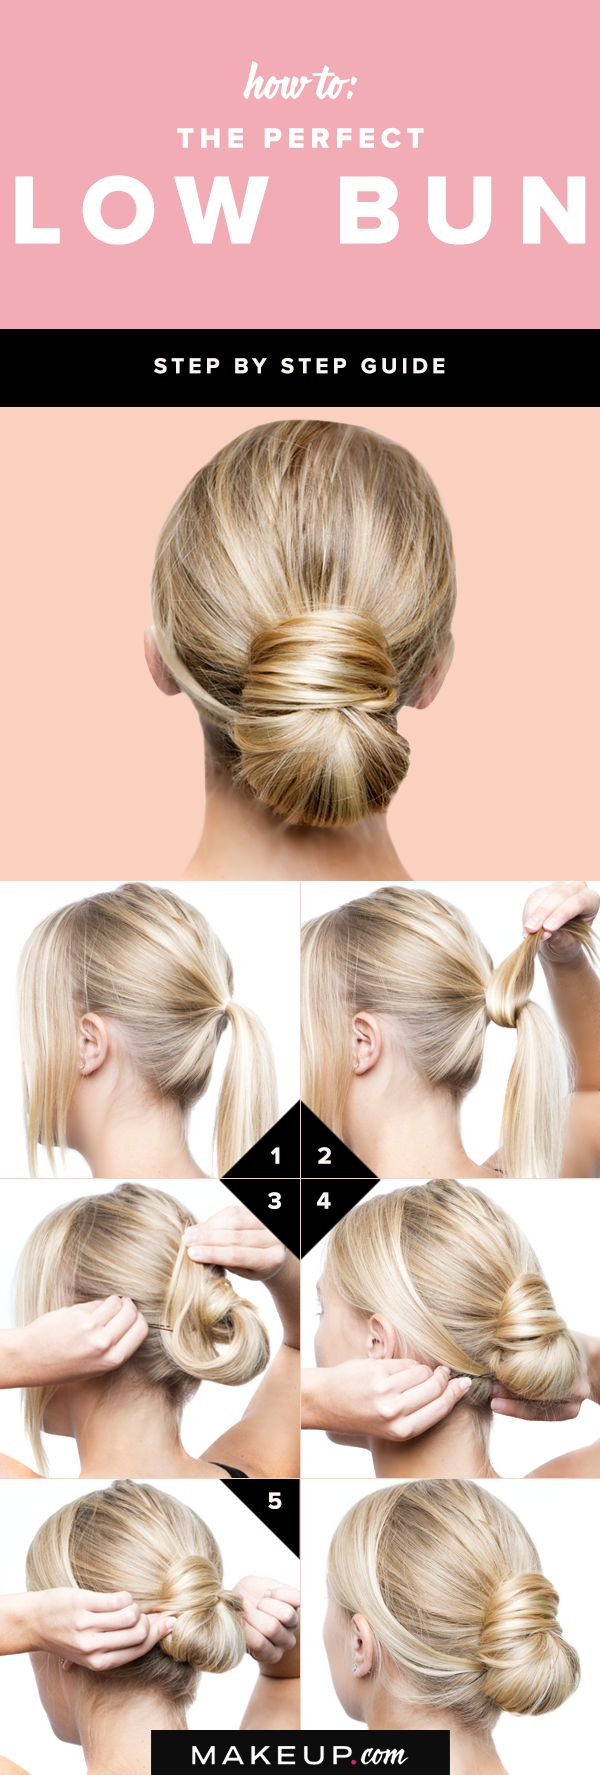 288 best hair inspiration images on pinterest hairstyle ideas how to the perfect low bun how to updo for medium hairhairstyles for medium length hair tutorialsimple solutioingenieria Image collections